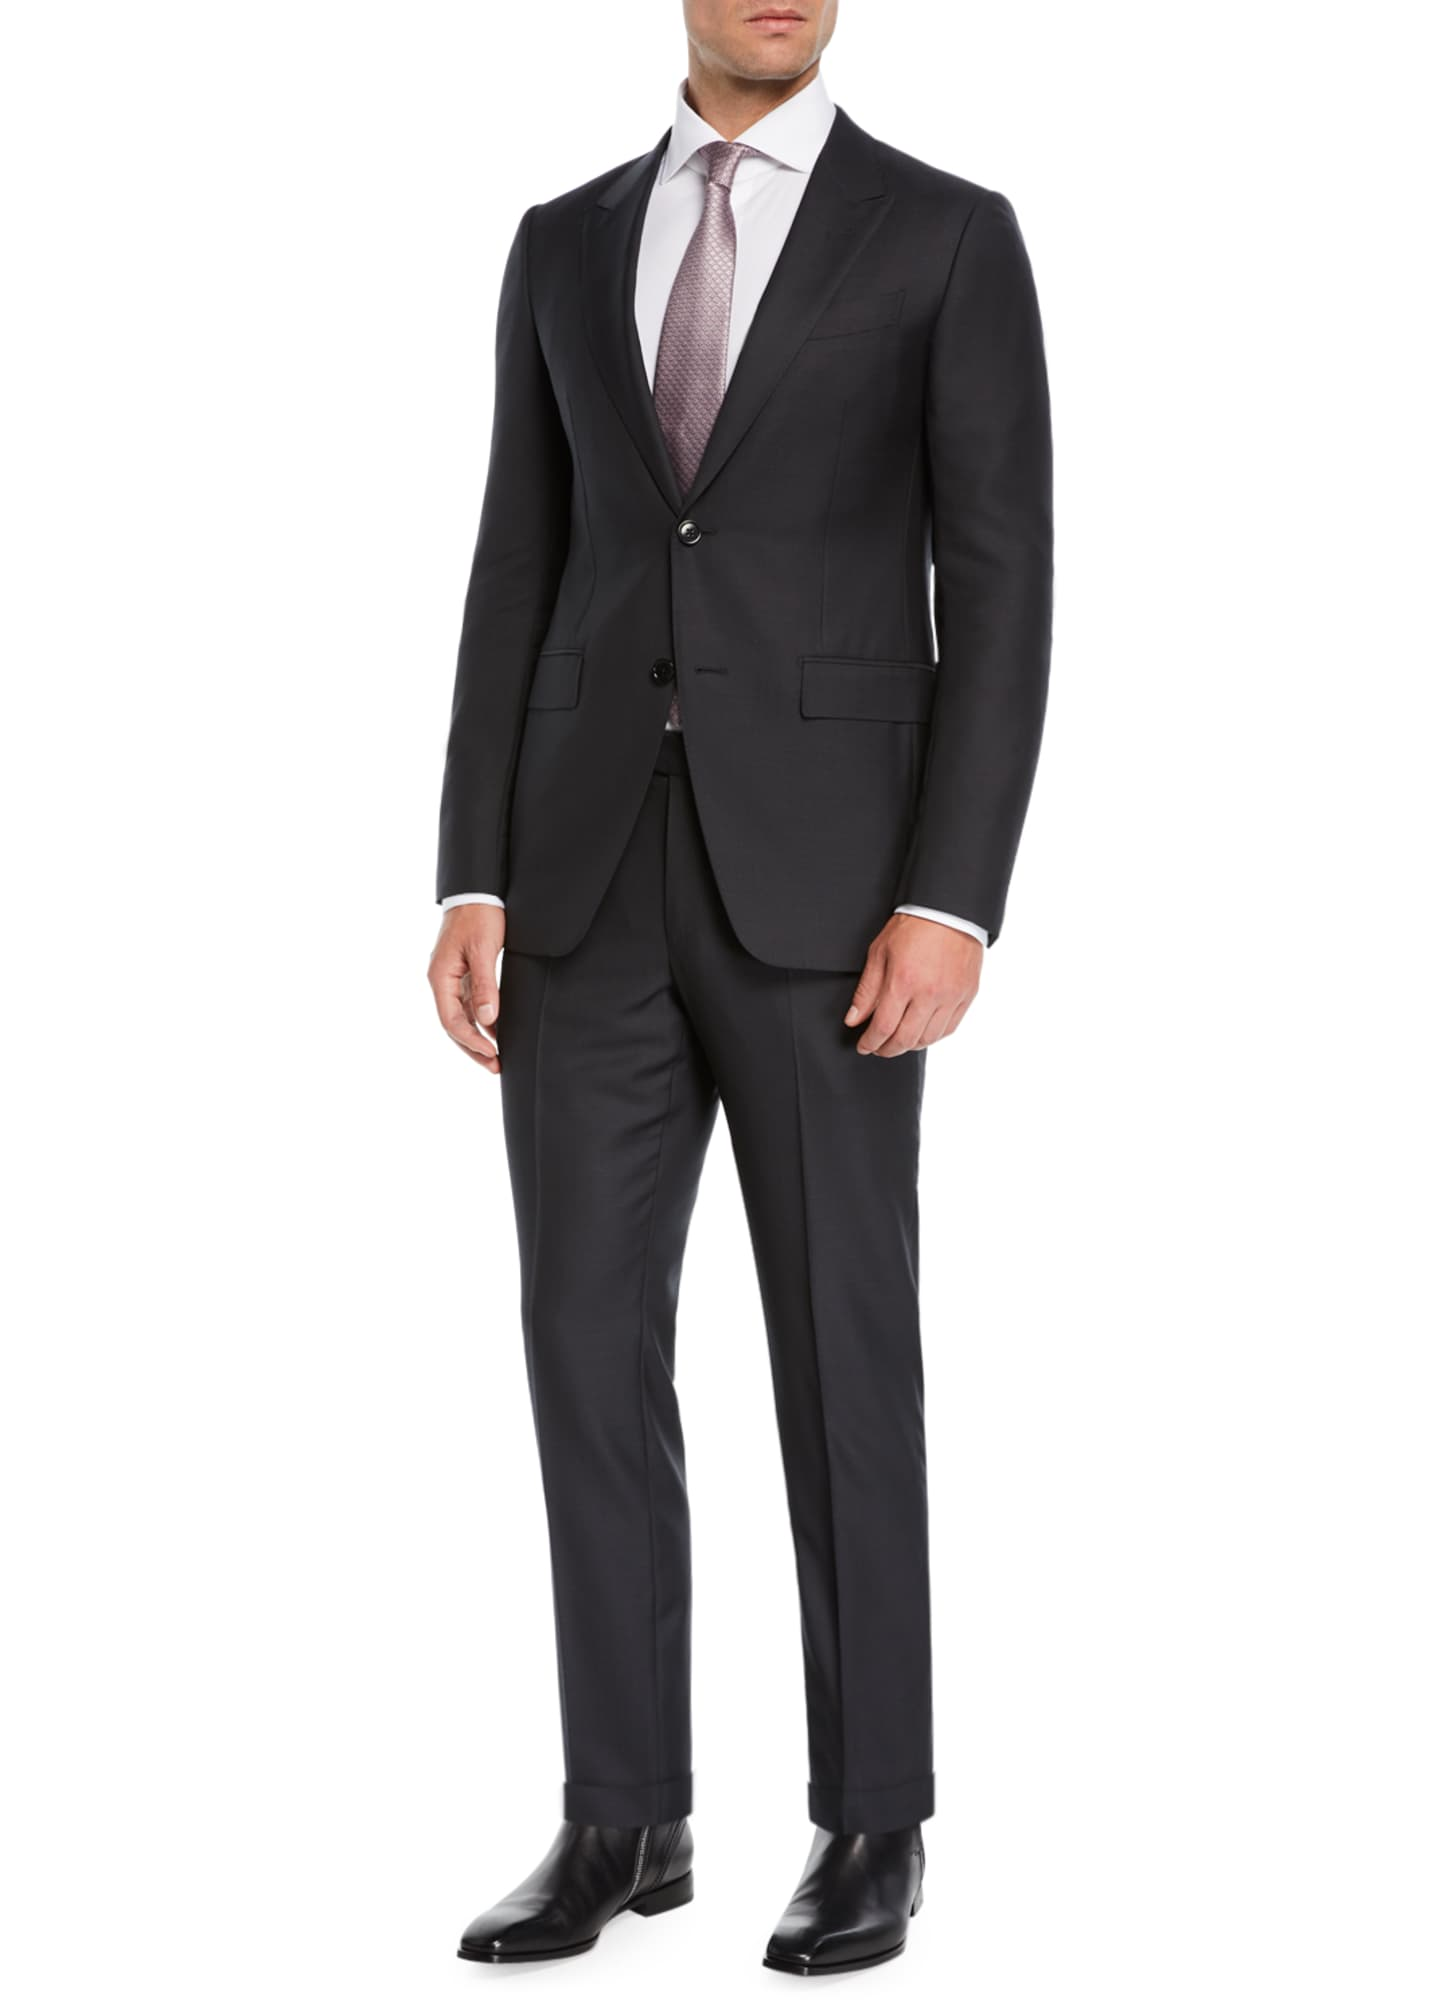 Ermenegildo Zegna Men's Two-Piece Nailhead Suit